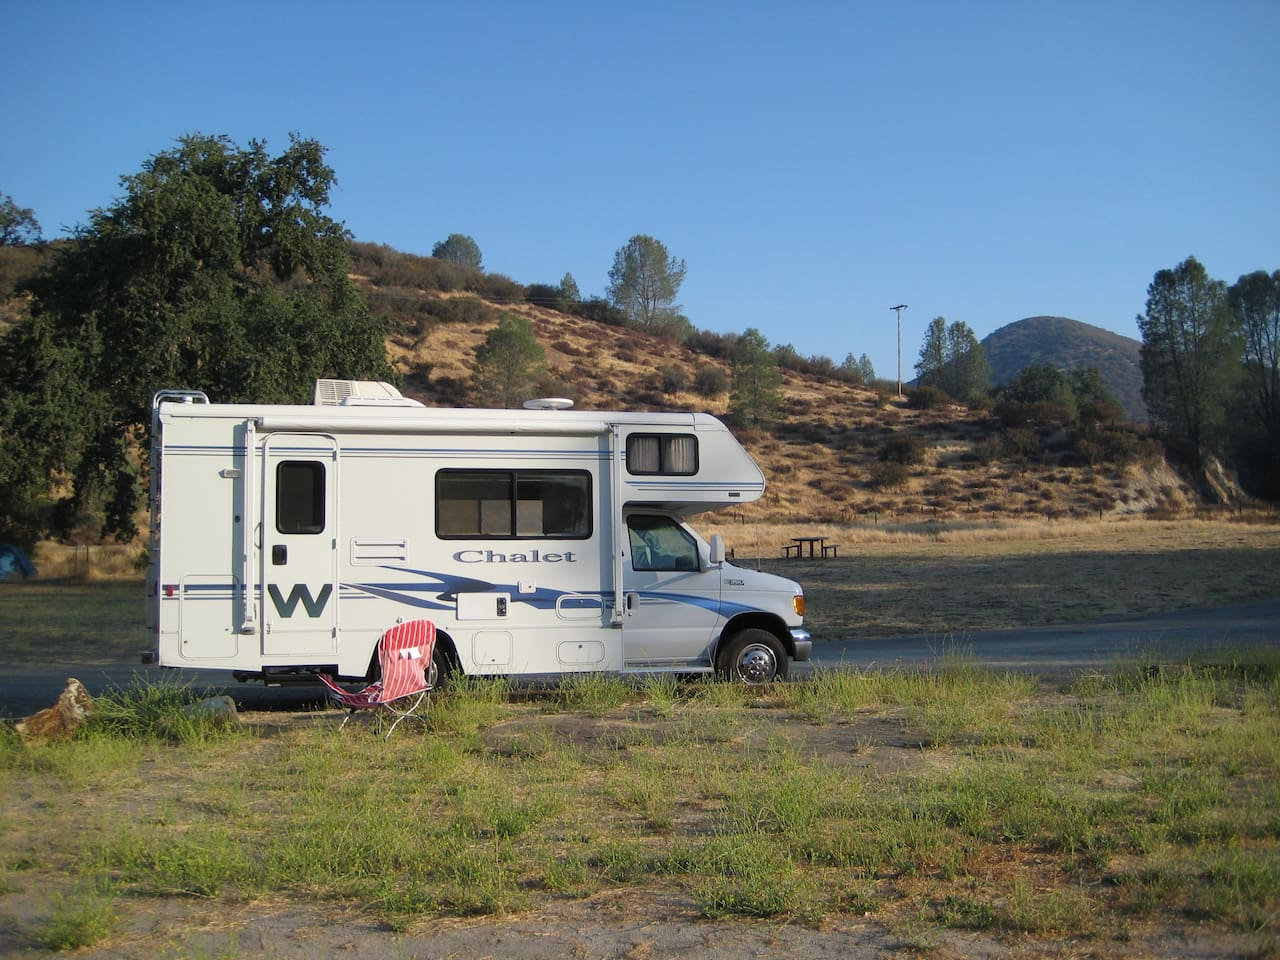 Camp in Comfort in the High Sierras